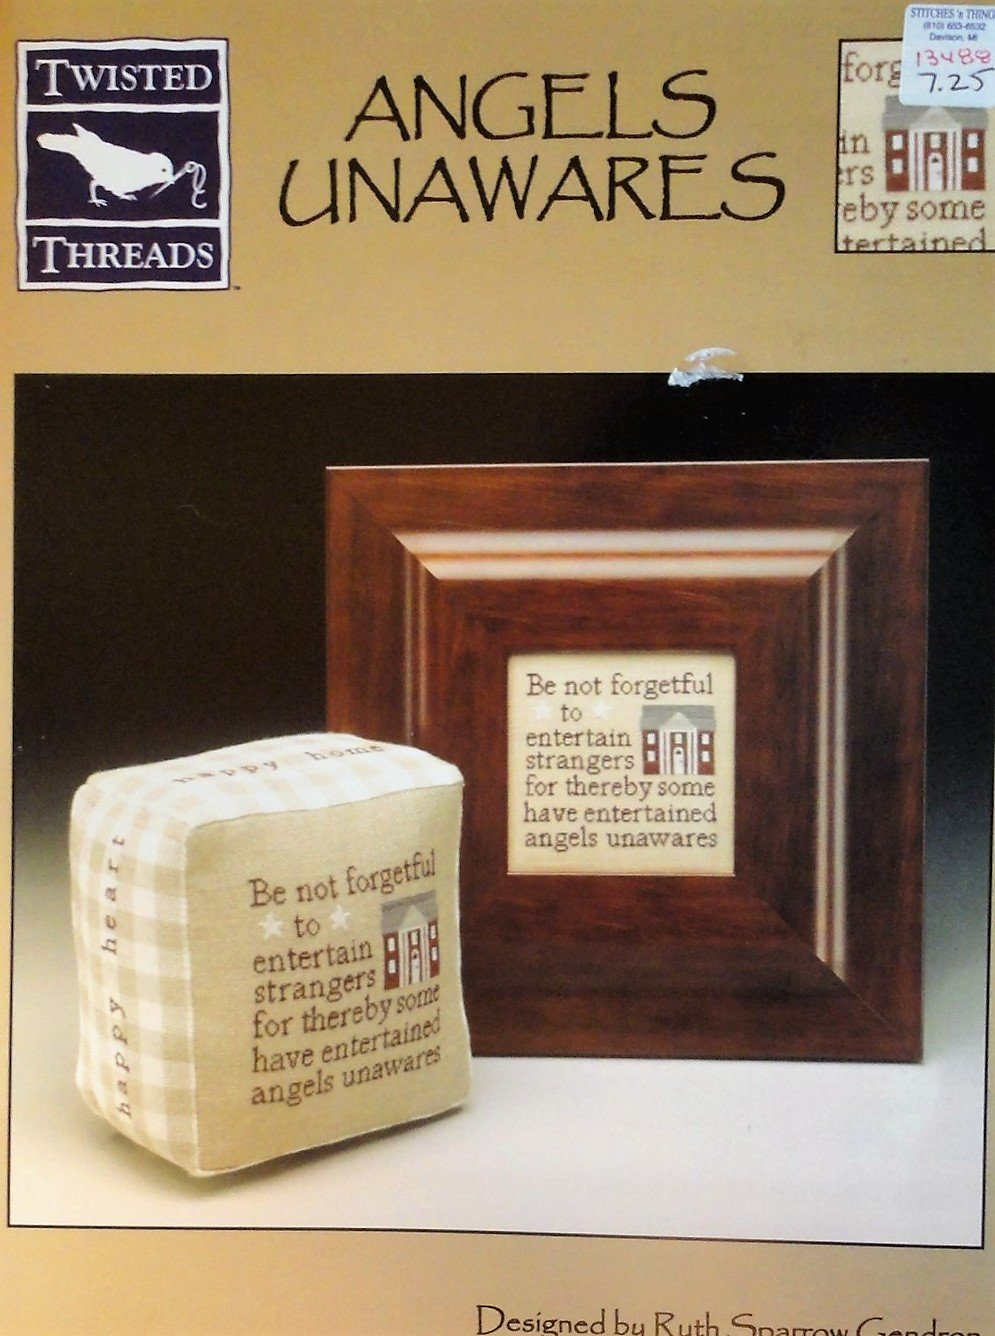 SOLD OUT! Twisted Threads Angels Unawares Cross Stitch Chart Designed by Ruth Sparrow Gendron